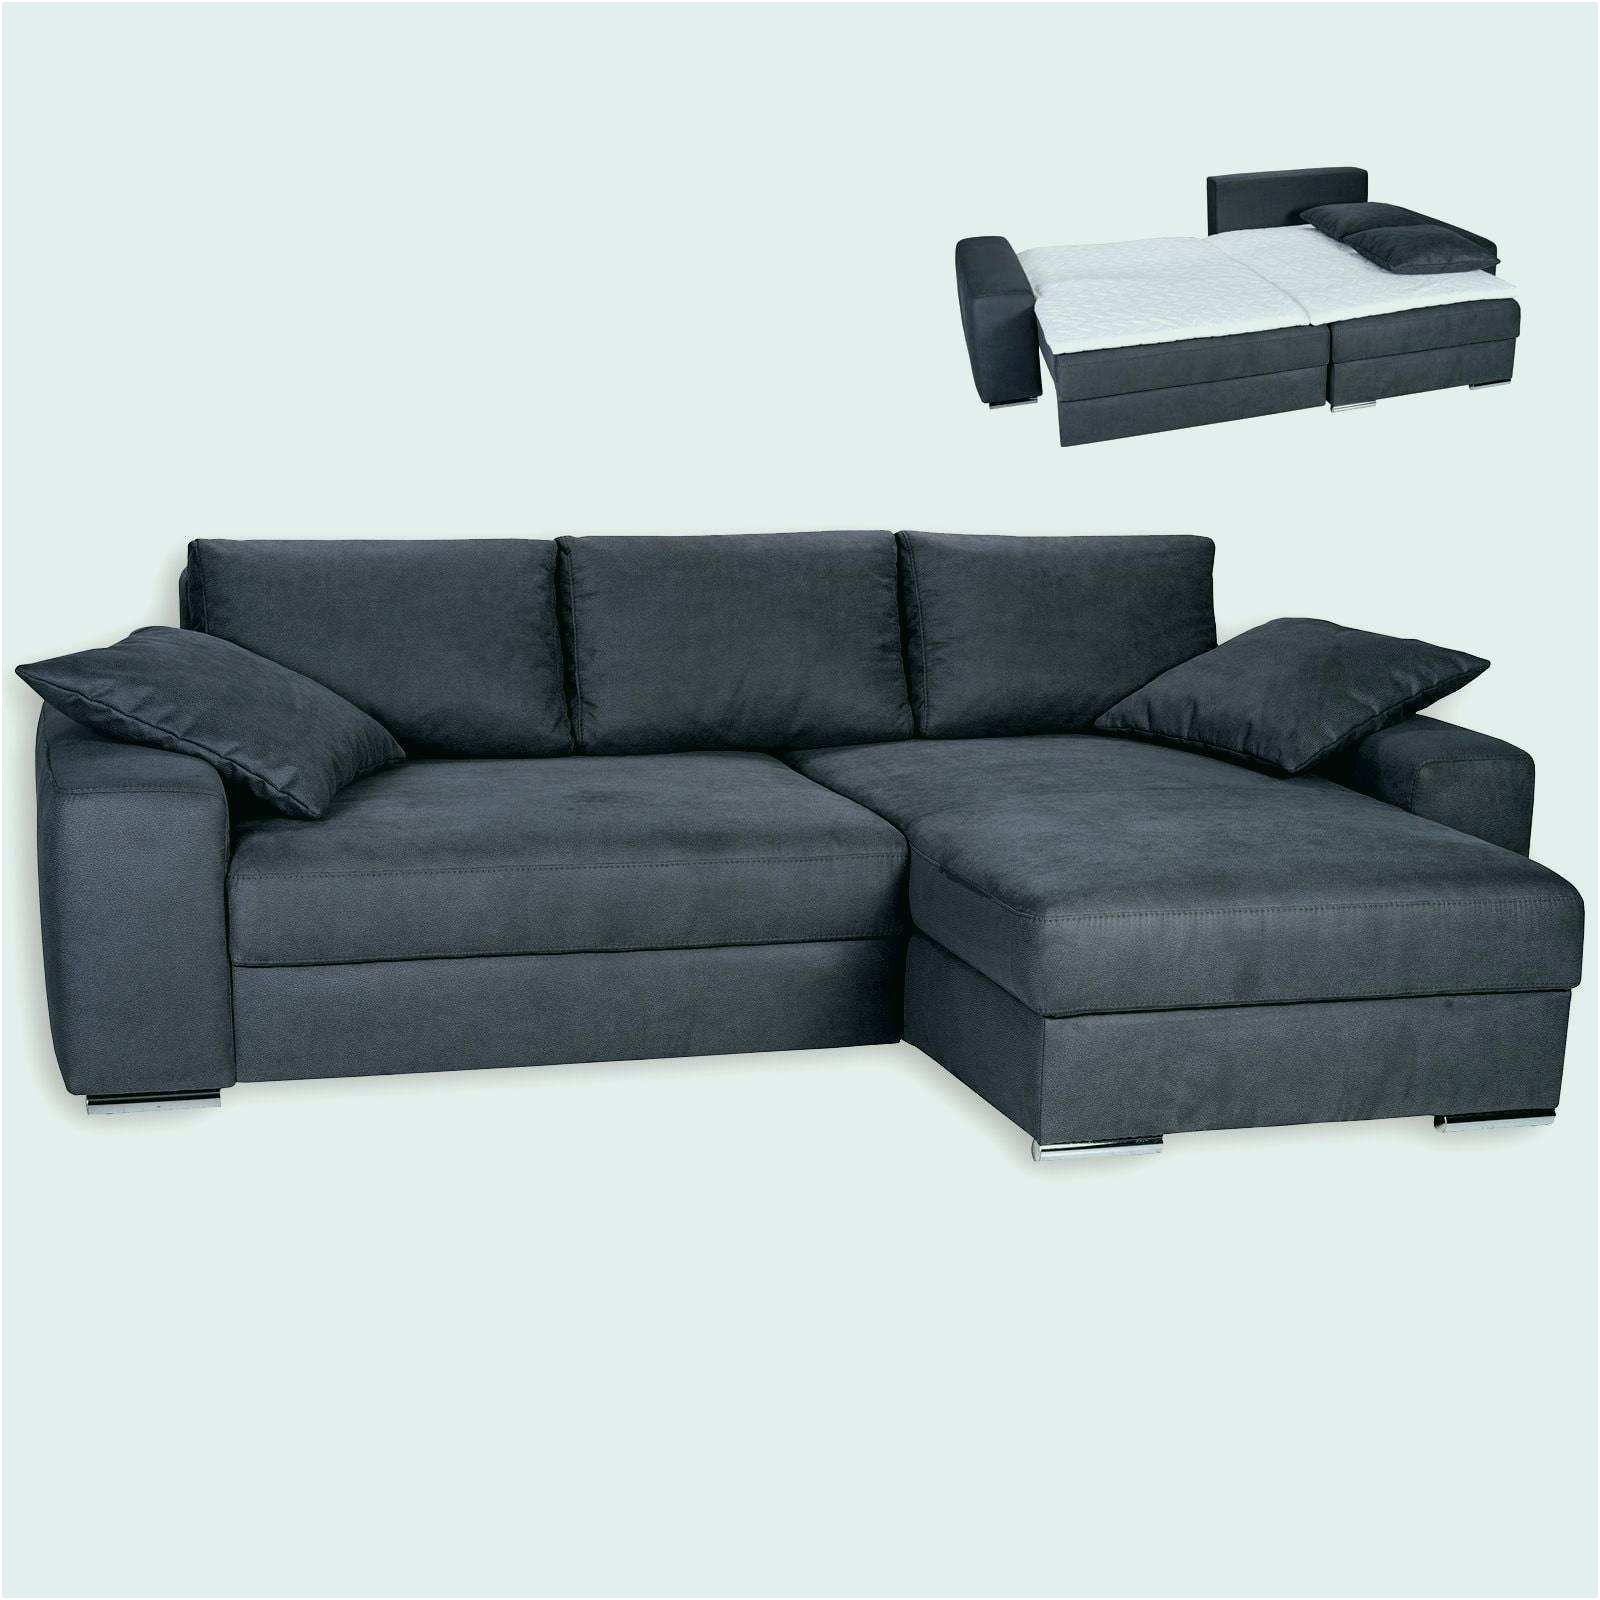 Big Sofa L Form Great Cool Couch L Form Good Big Sofa L Form Big